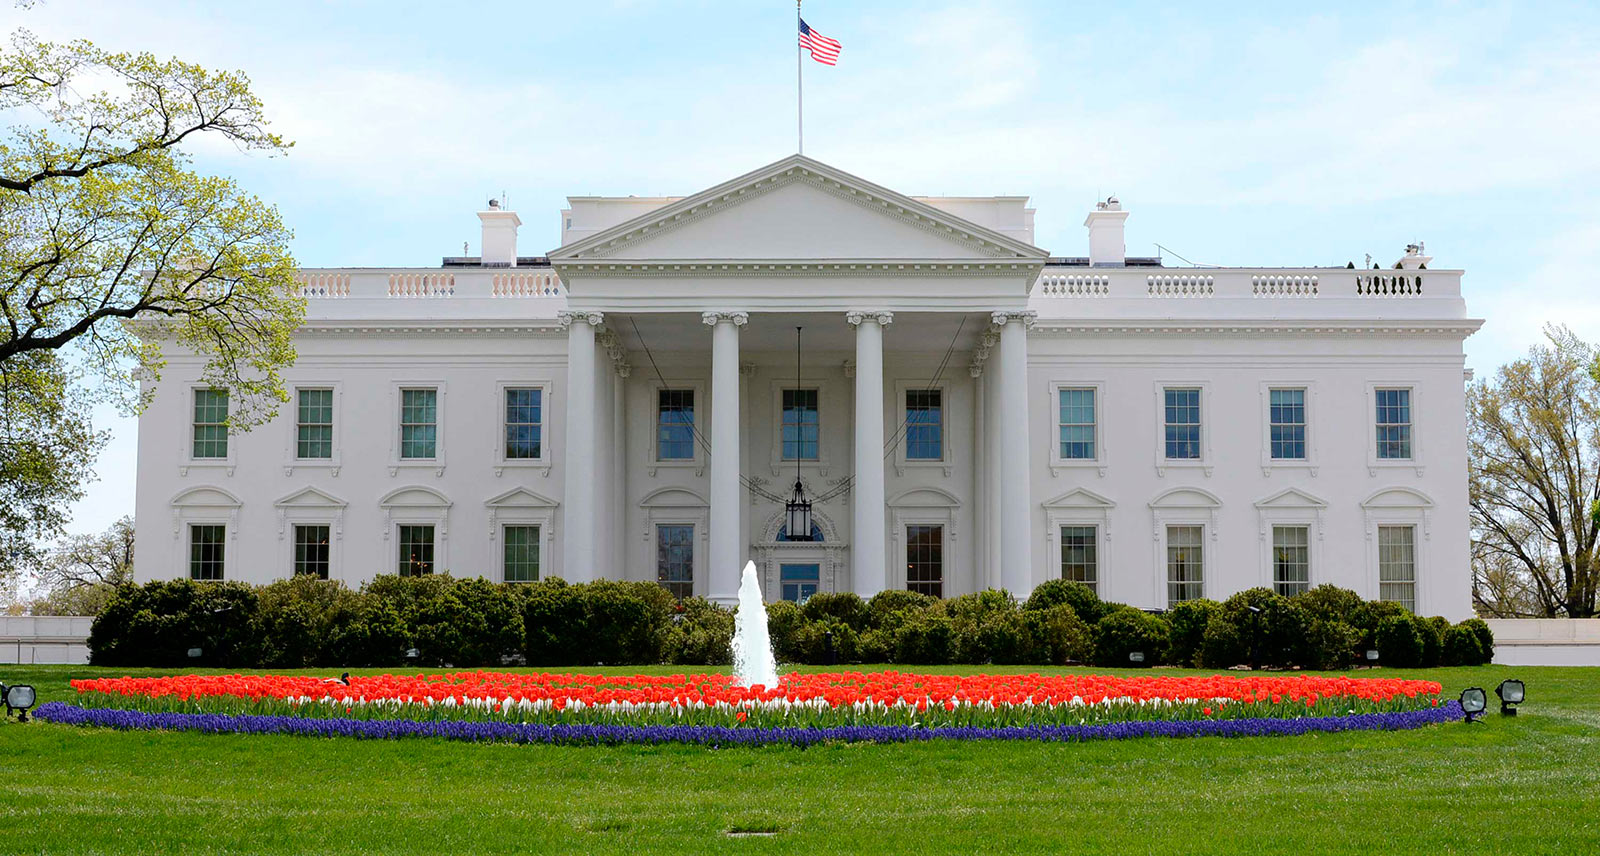 Whitehouse Dedicated To Peter Kurten Sadist And Mass Slayer